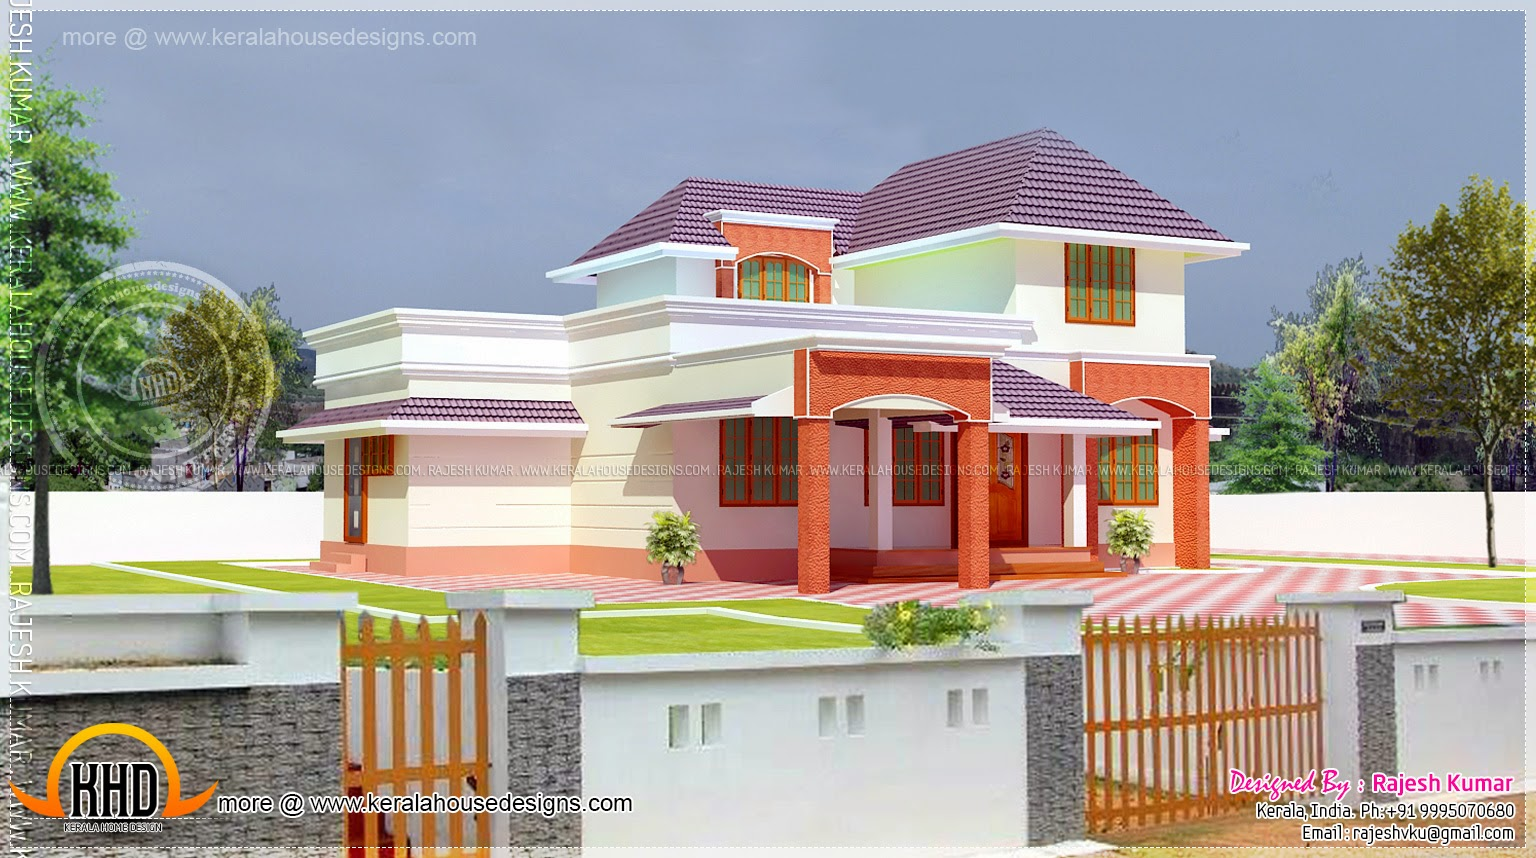 Elevation of kerala house model house interior for House elevation models